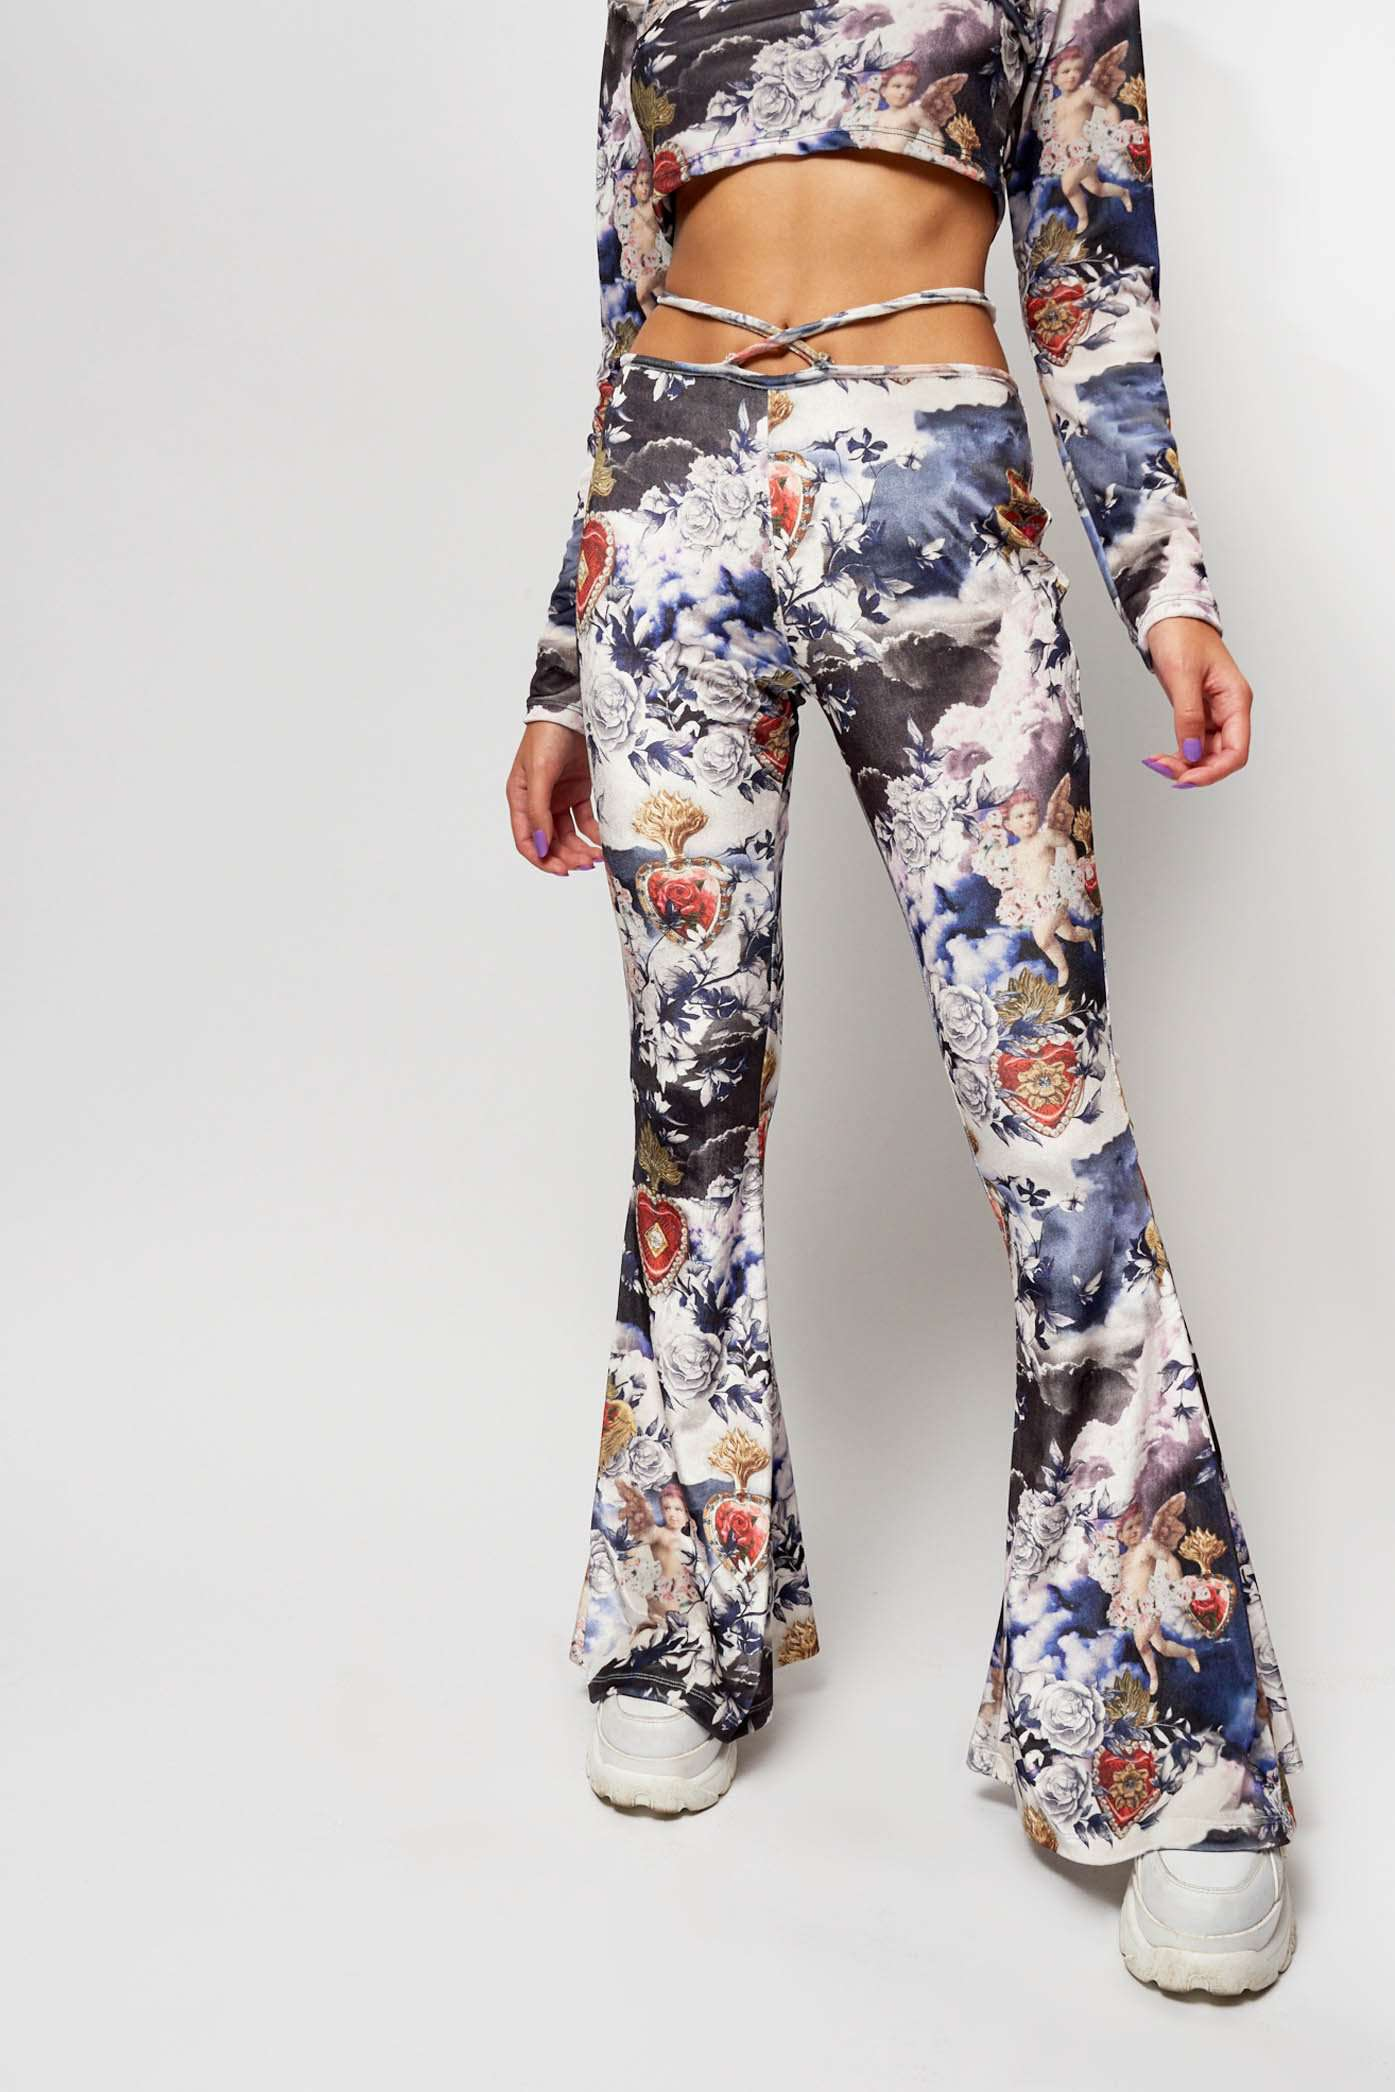 Cherub Print Flares with Heart Thong Detail